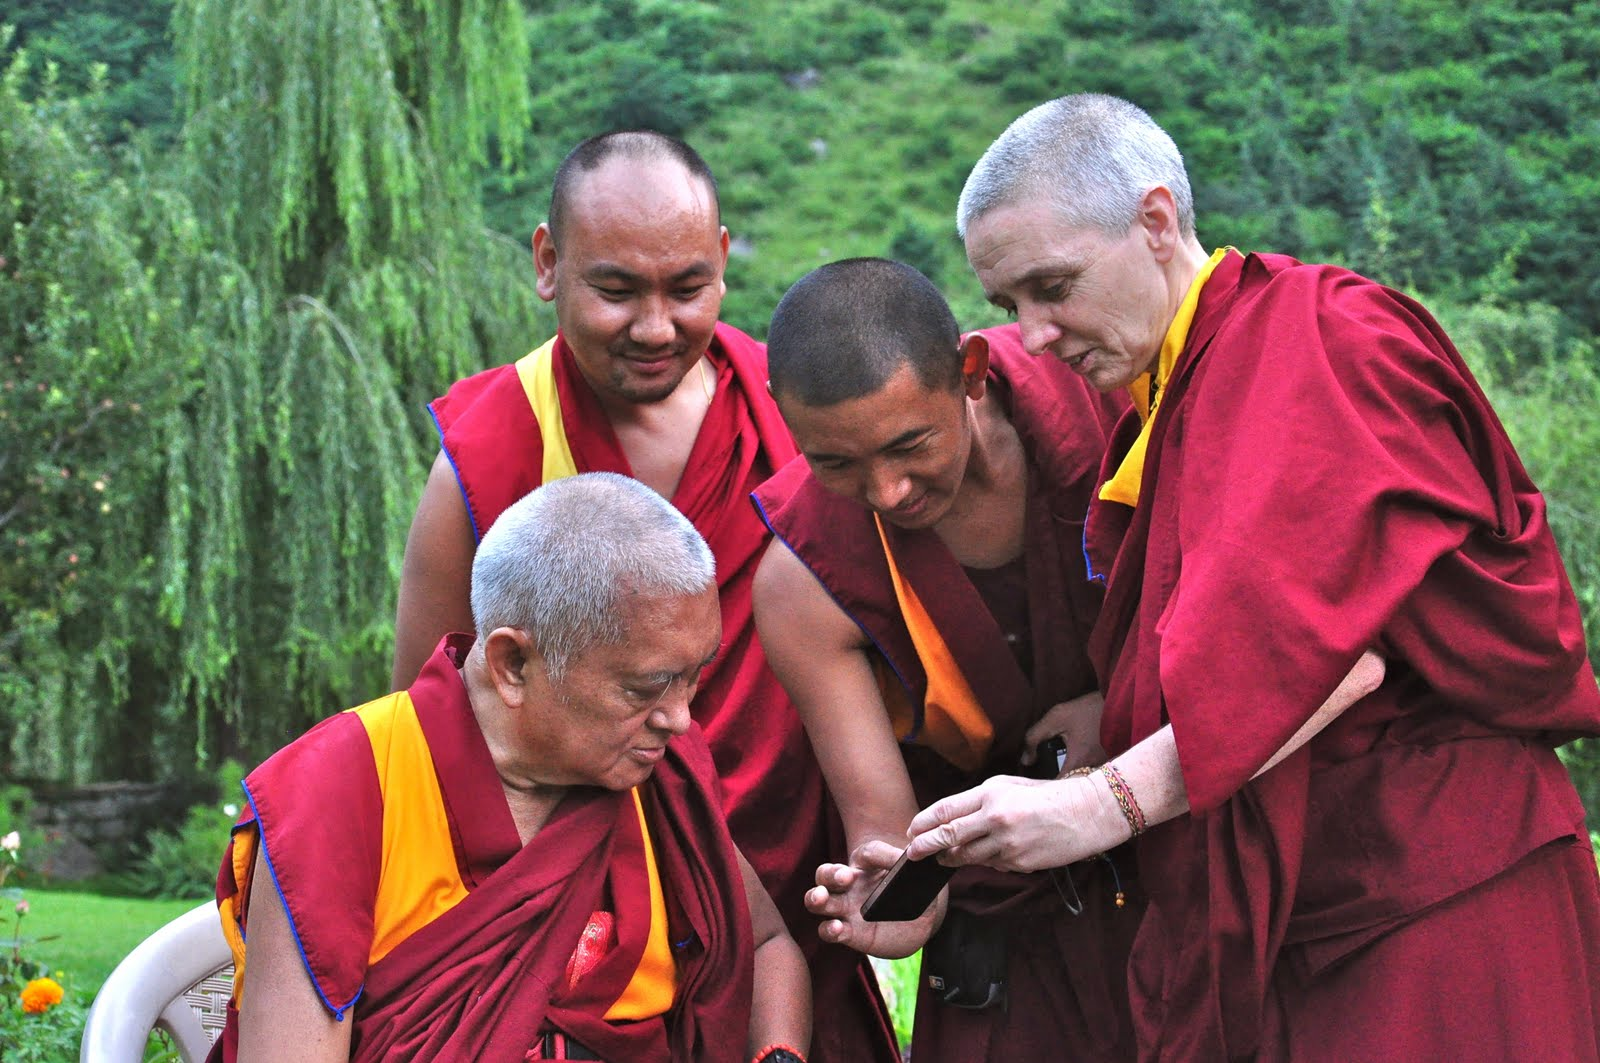 Rinpoche looking at a video of Sangpo hand-gliding. With Vens Tendar, Sangpo and Sarah in Manali, India, July 2013.